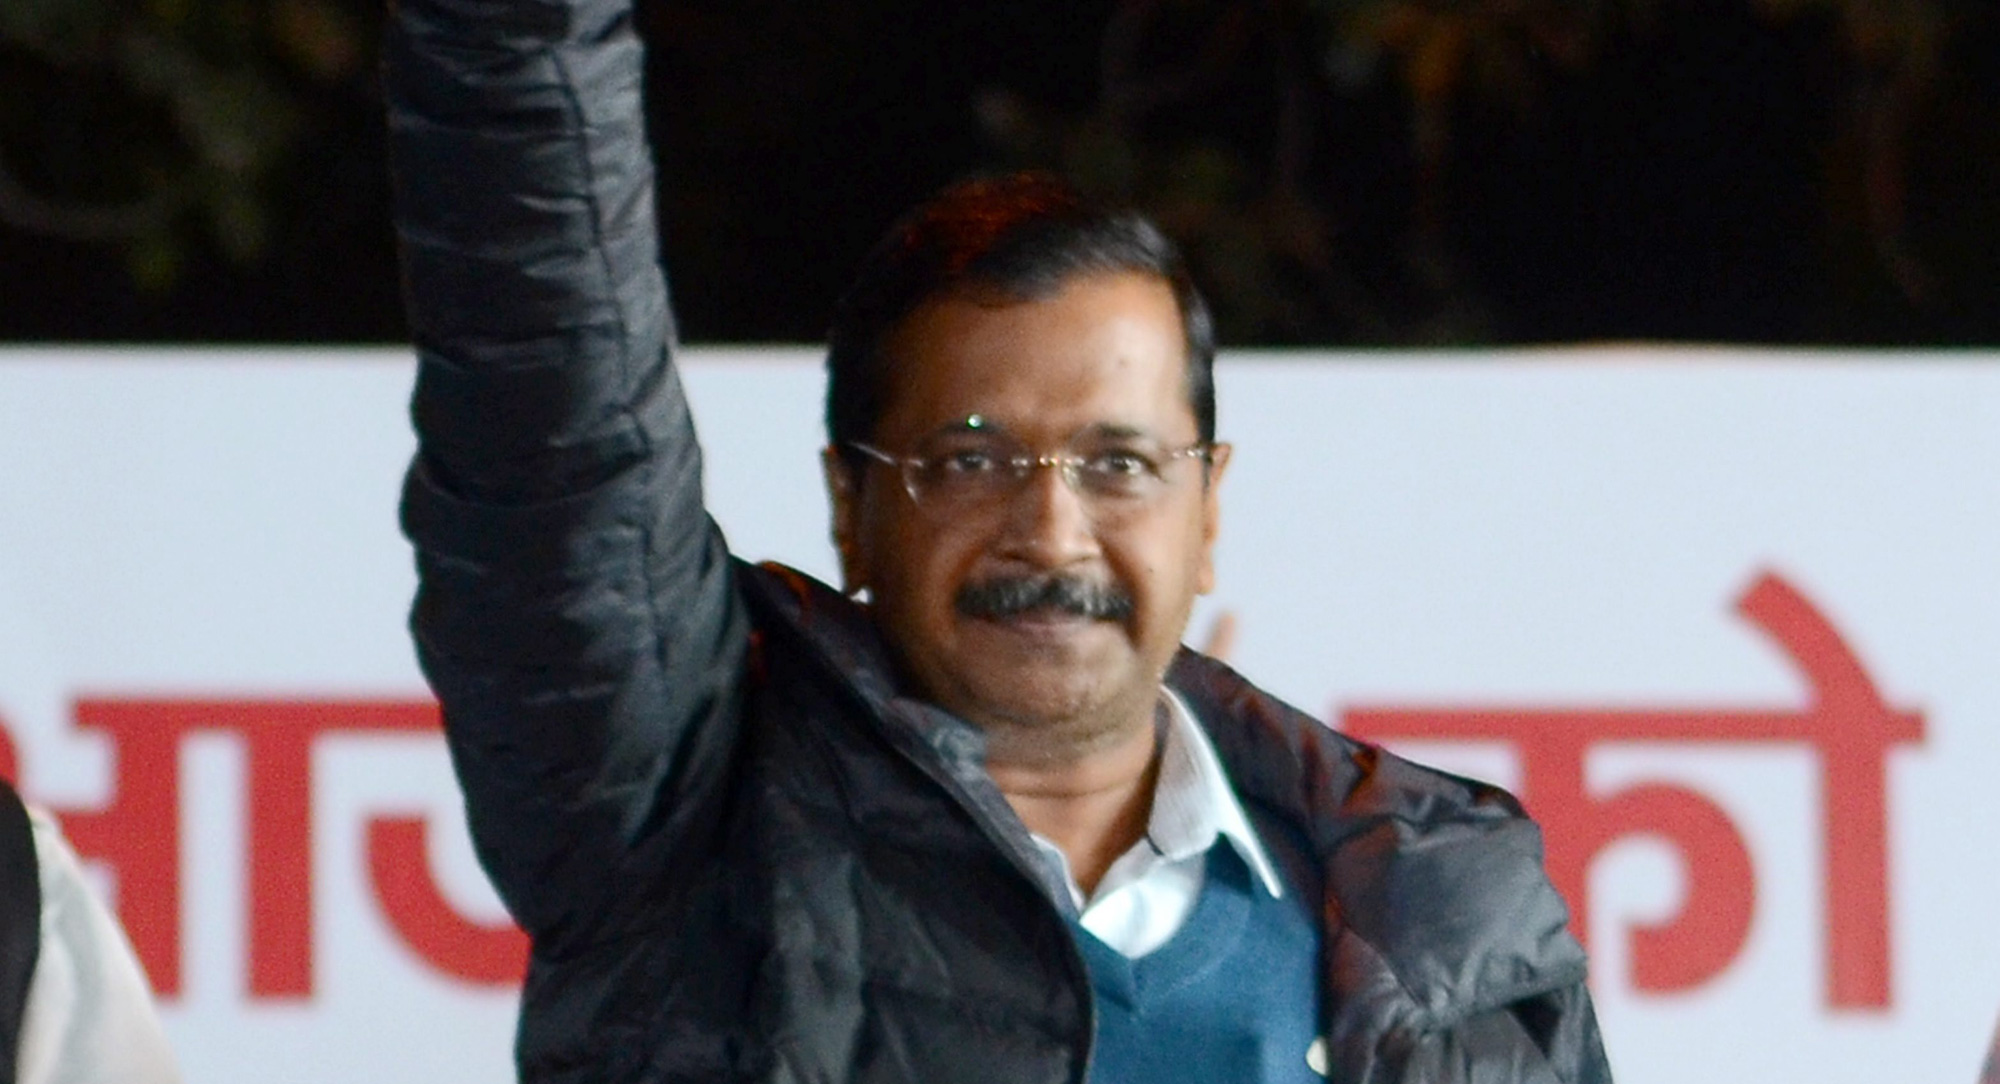 Chief minister Arvind Kejriwal has announced that he would go on an indefinite hunger strike from March 1 to demand statehood for Delhi.